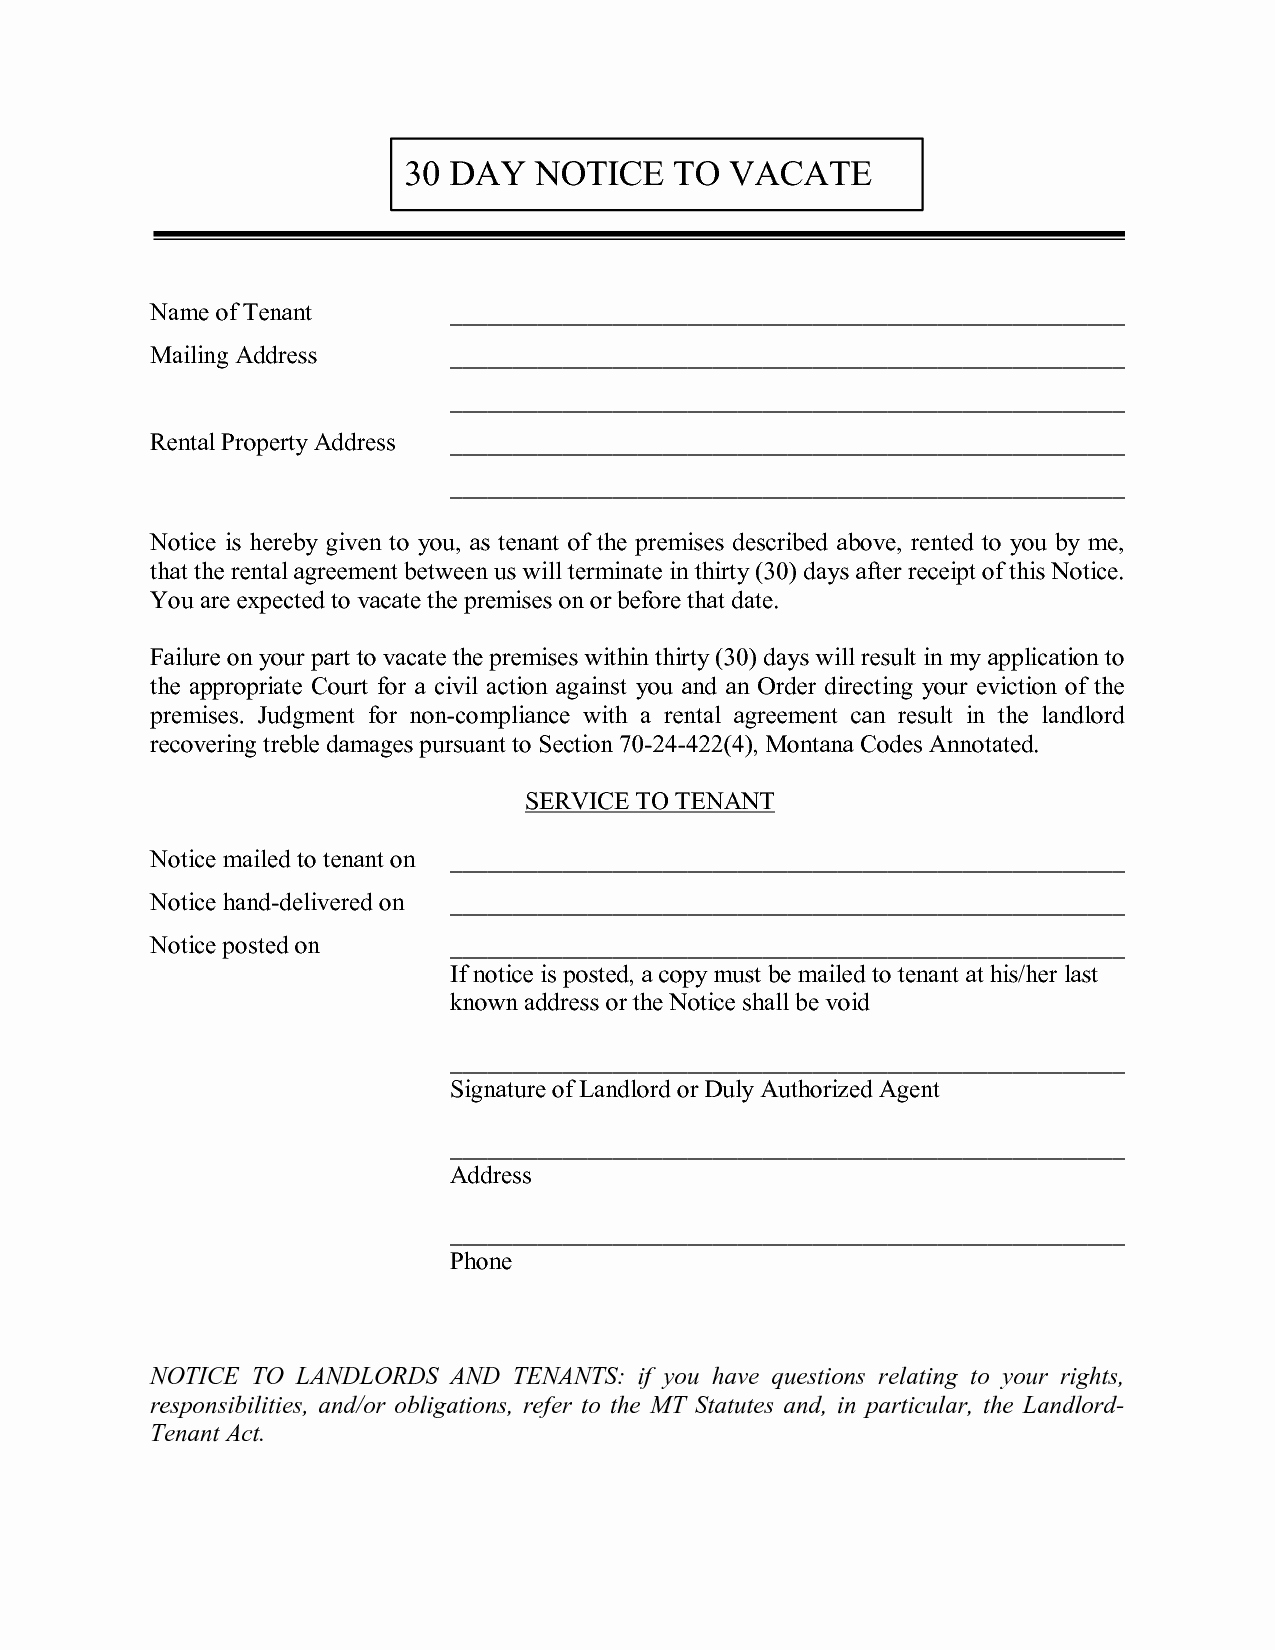 30 Notice to Move New 30 Day Notice to Vacate to Tenant Free Printable Documents